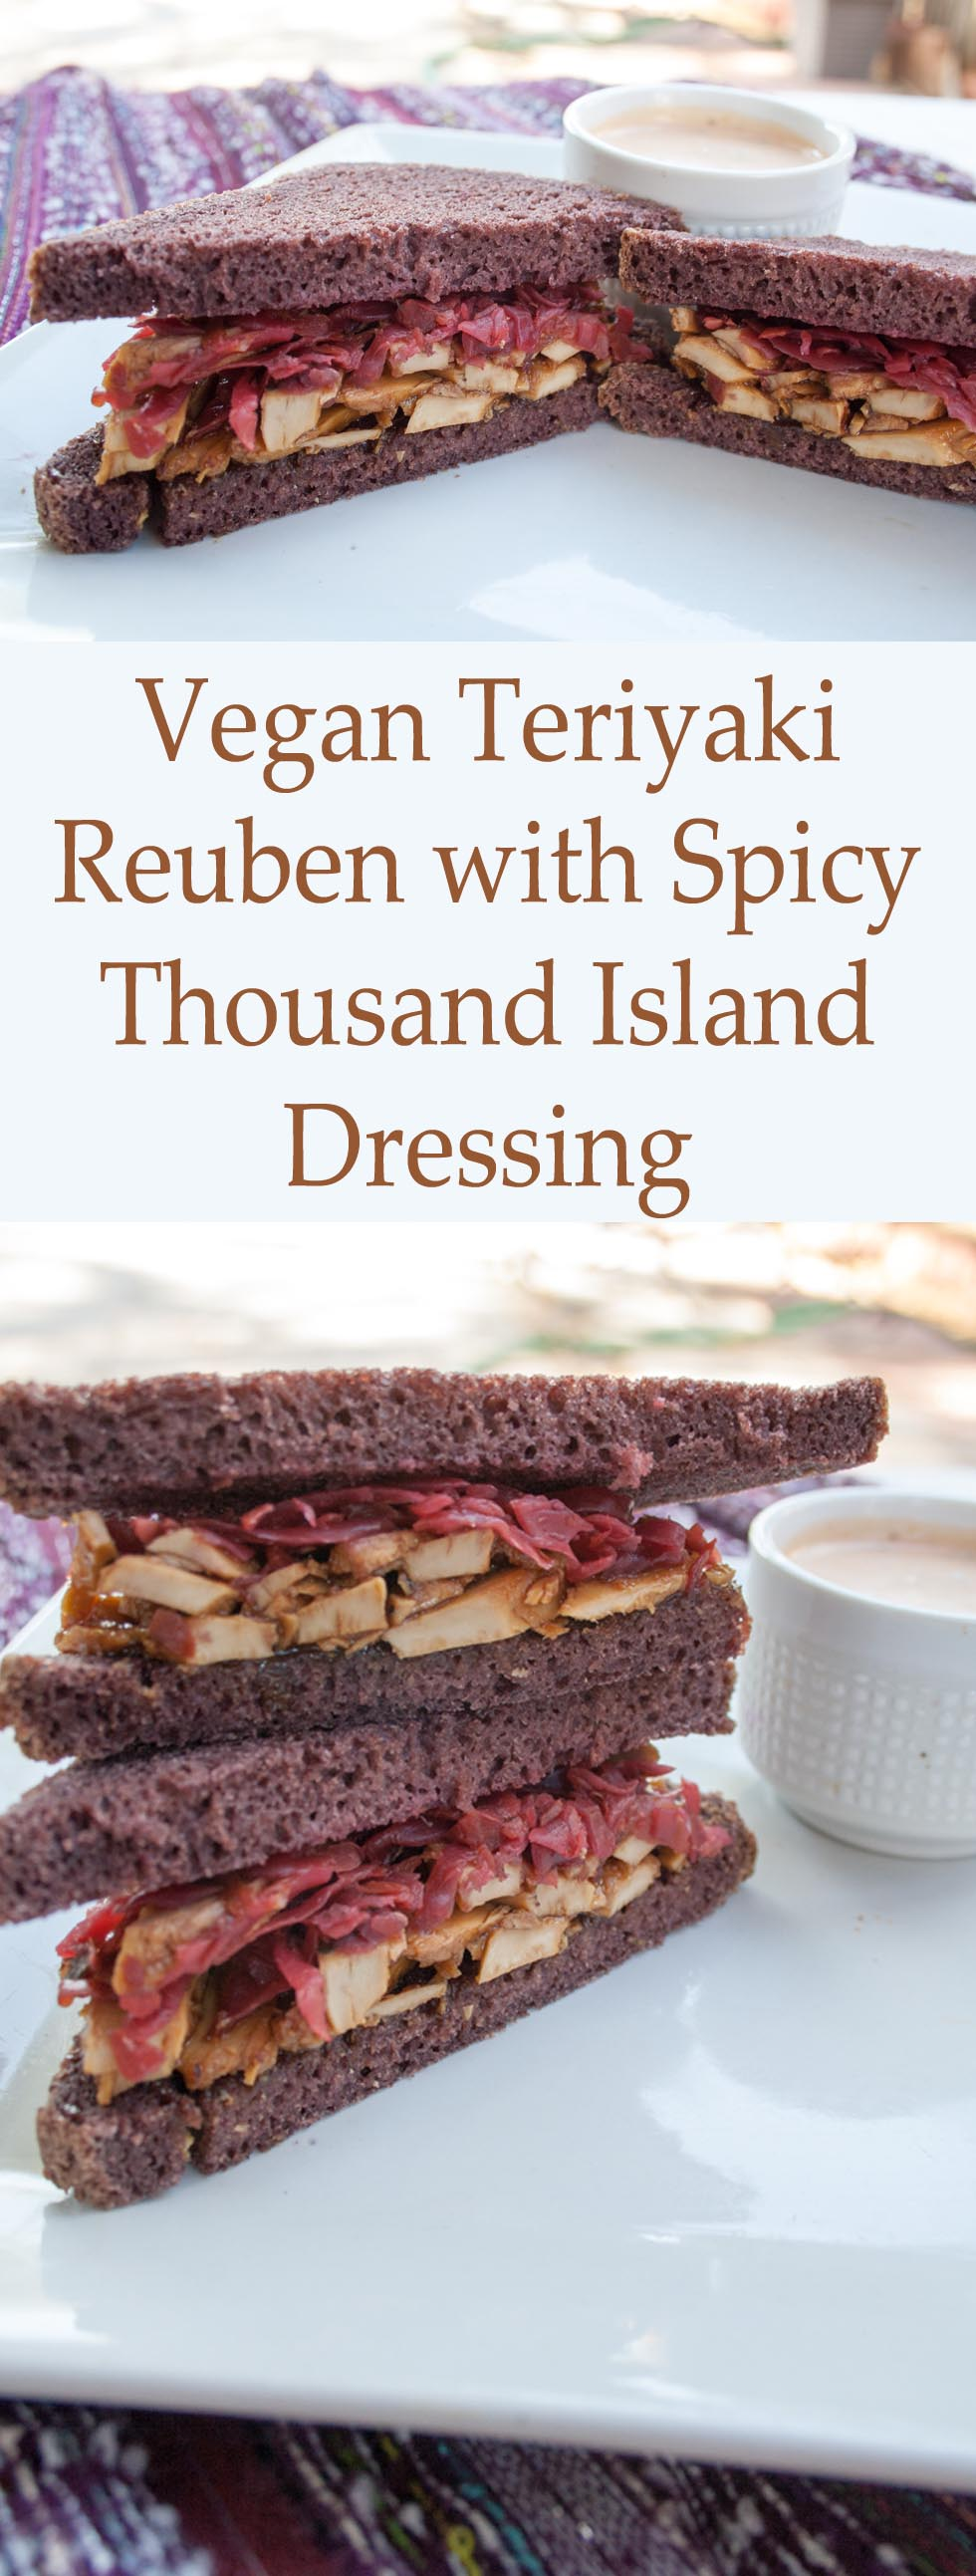 Vegan Teriyaki Reuben with Spicy Thousand Island Dressing collage photo with text.